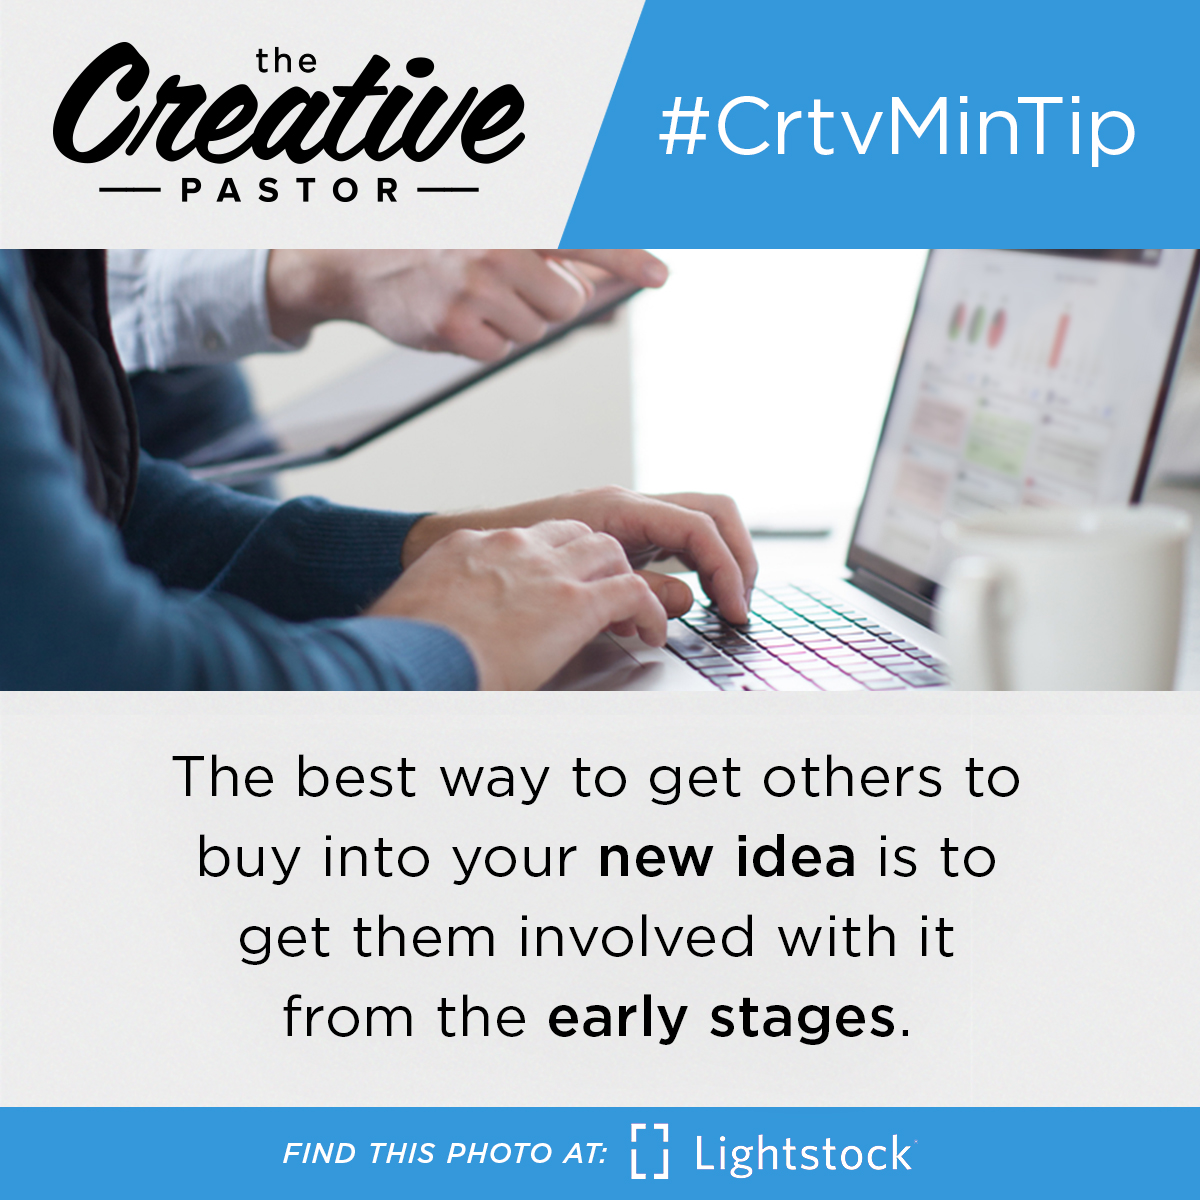 The best way to get others to buy into your new idea is to get them involved with it from the early stages.